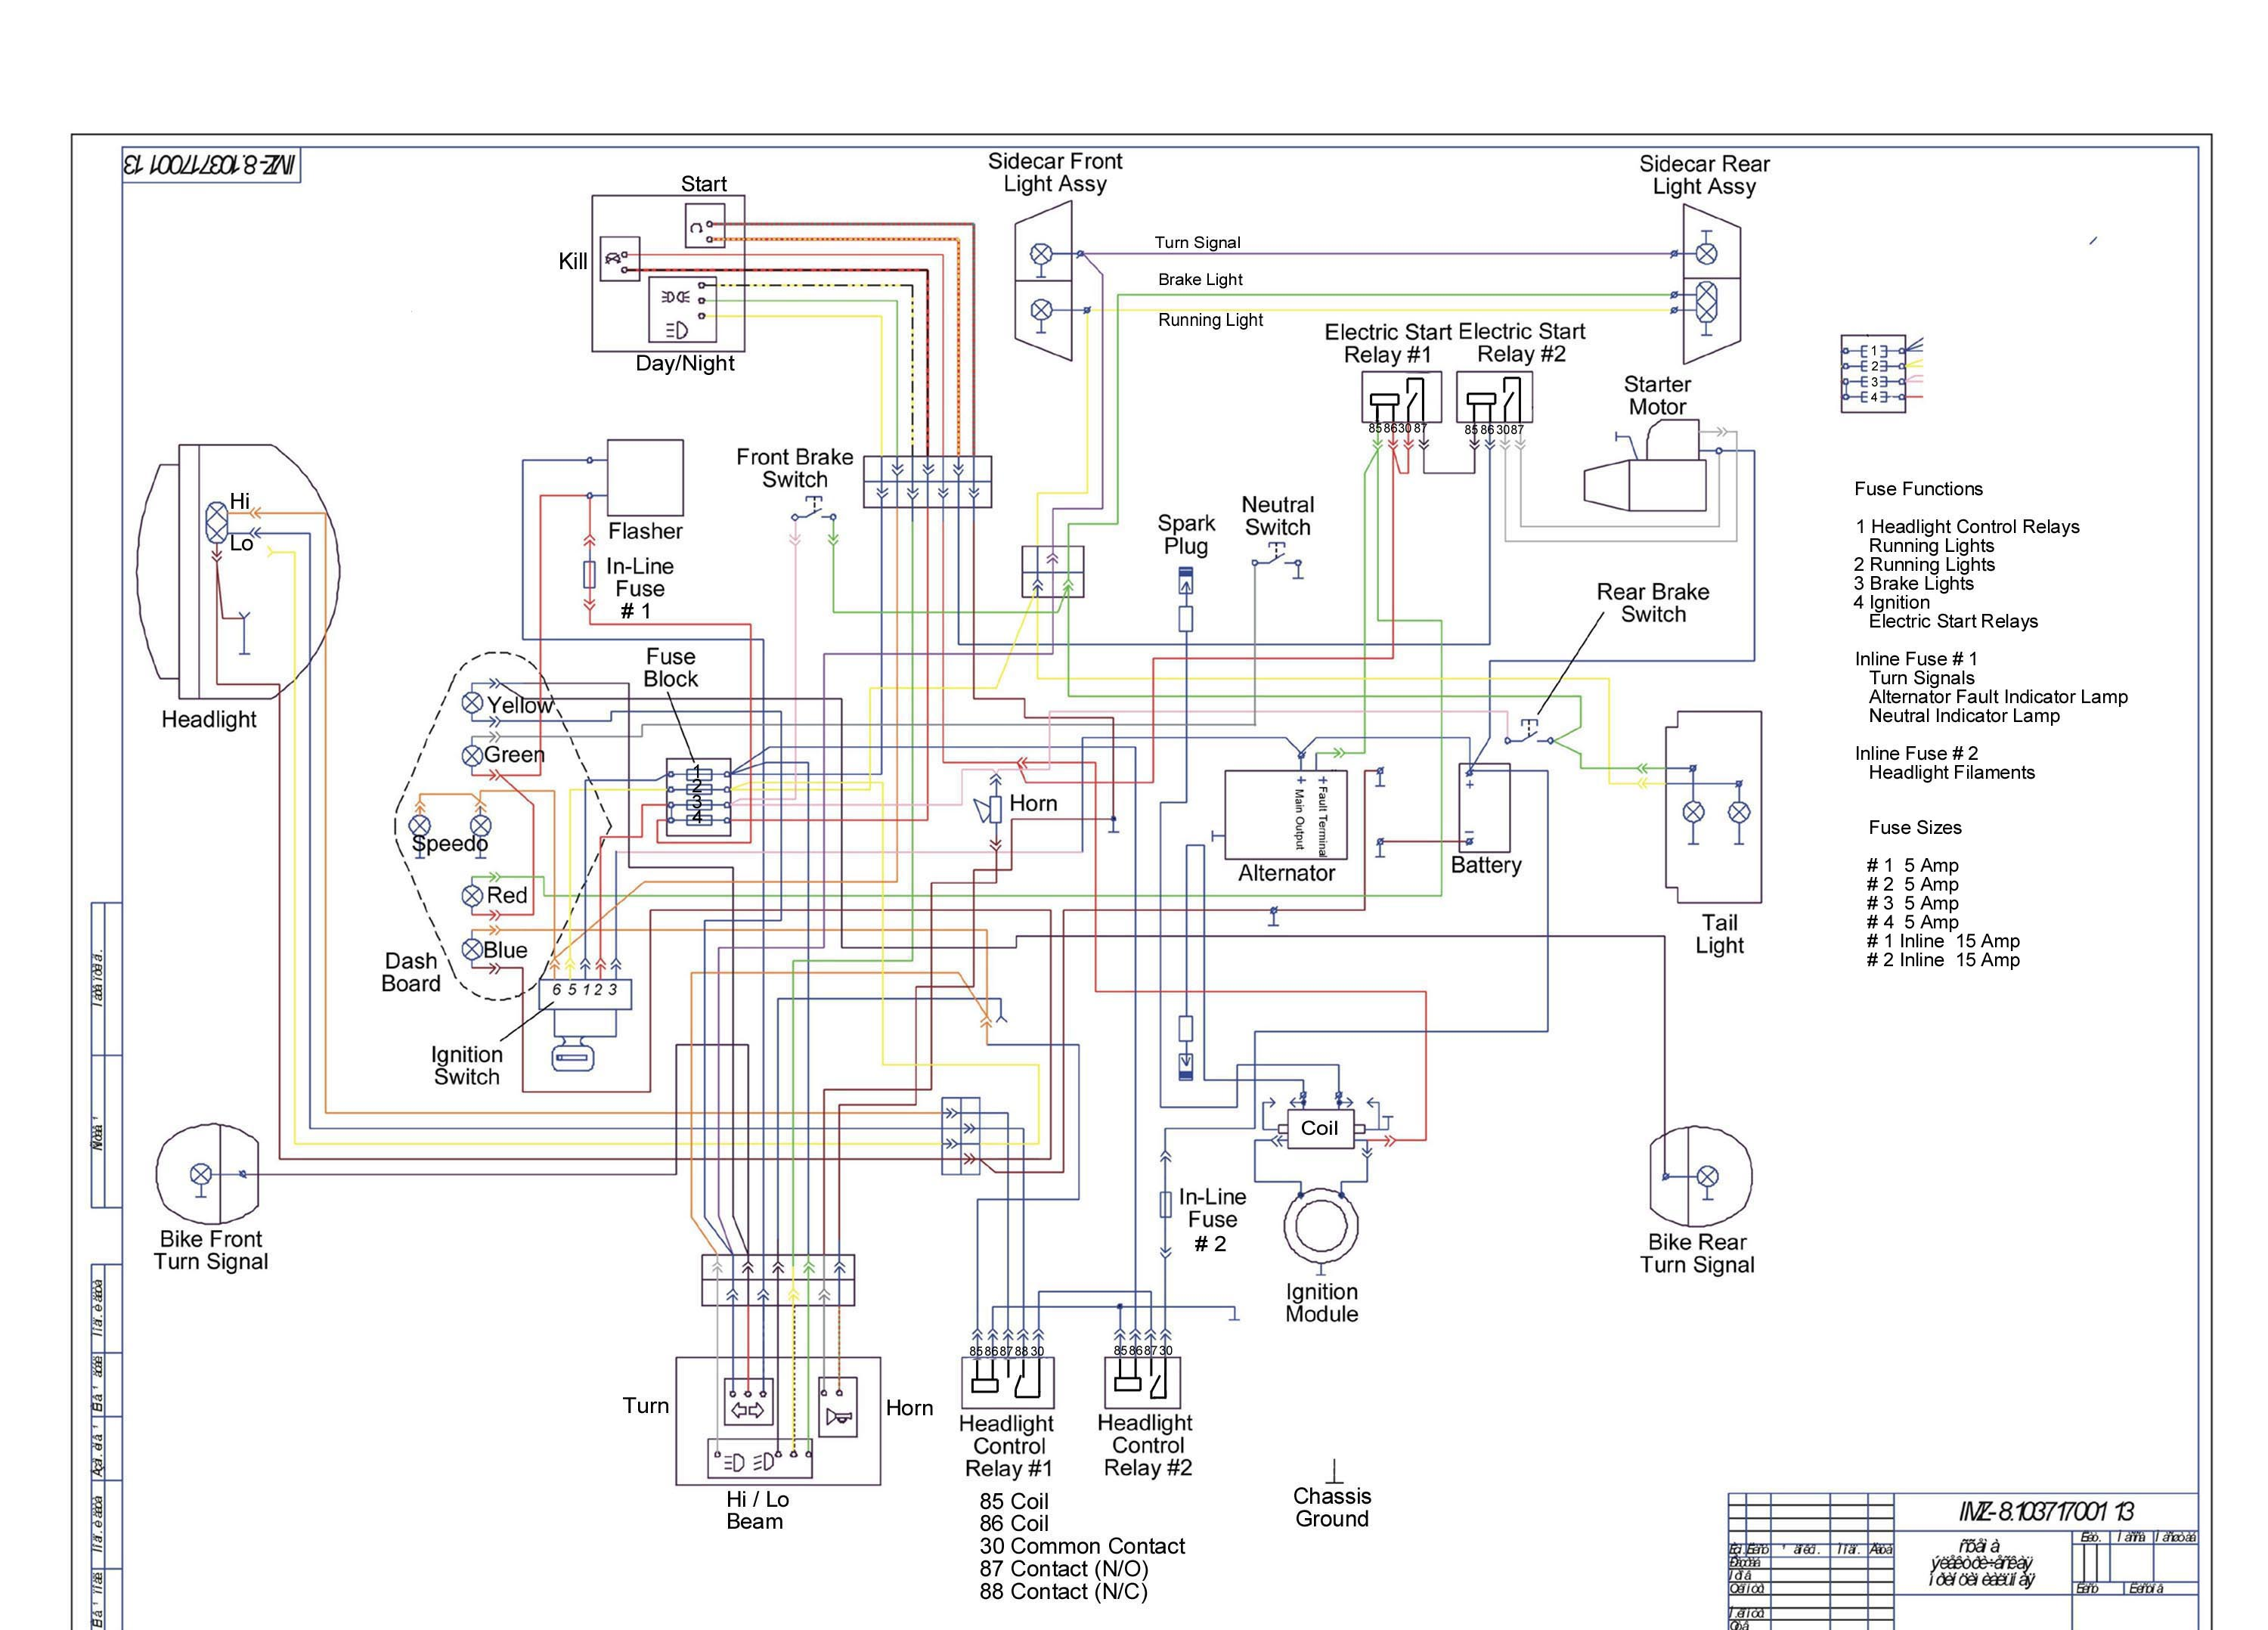 750Wiring diagrams royal enfield e start wiring diagram royal enfield 2000 grizzly 600 wiring diagram at n-0.co